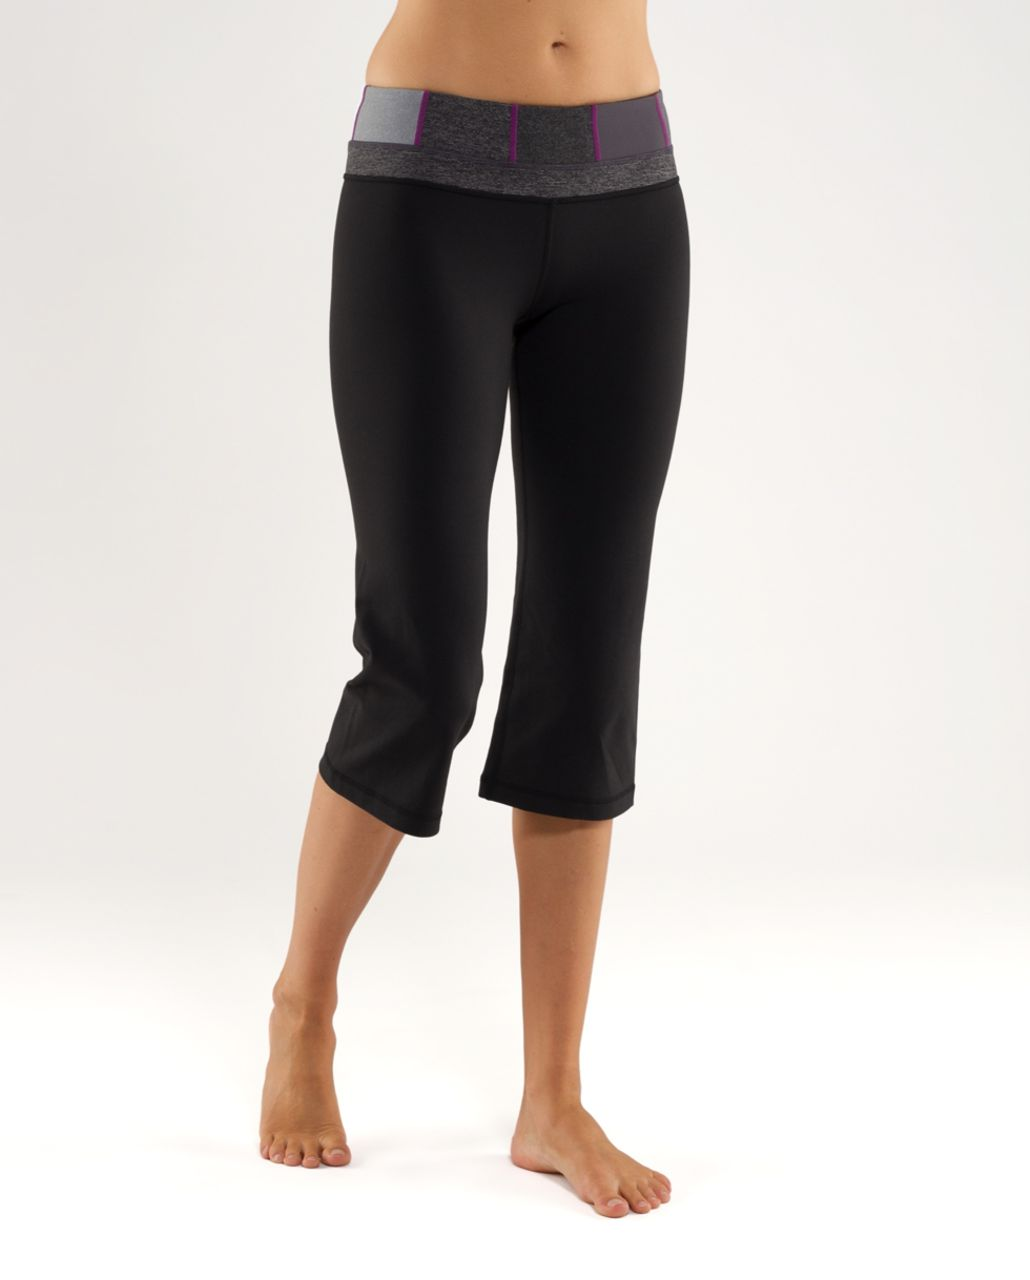 Lululemon Groove Crop - Black /  Quilt 24 /  Coal Wee Stripe